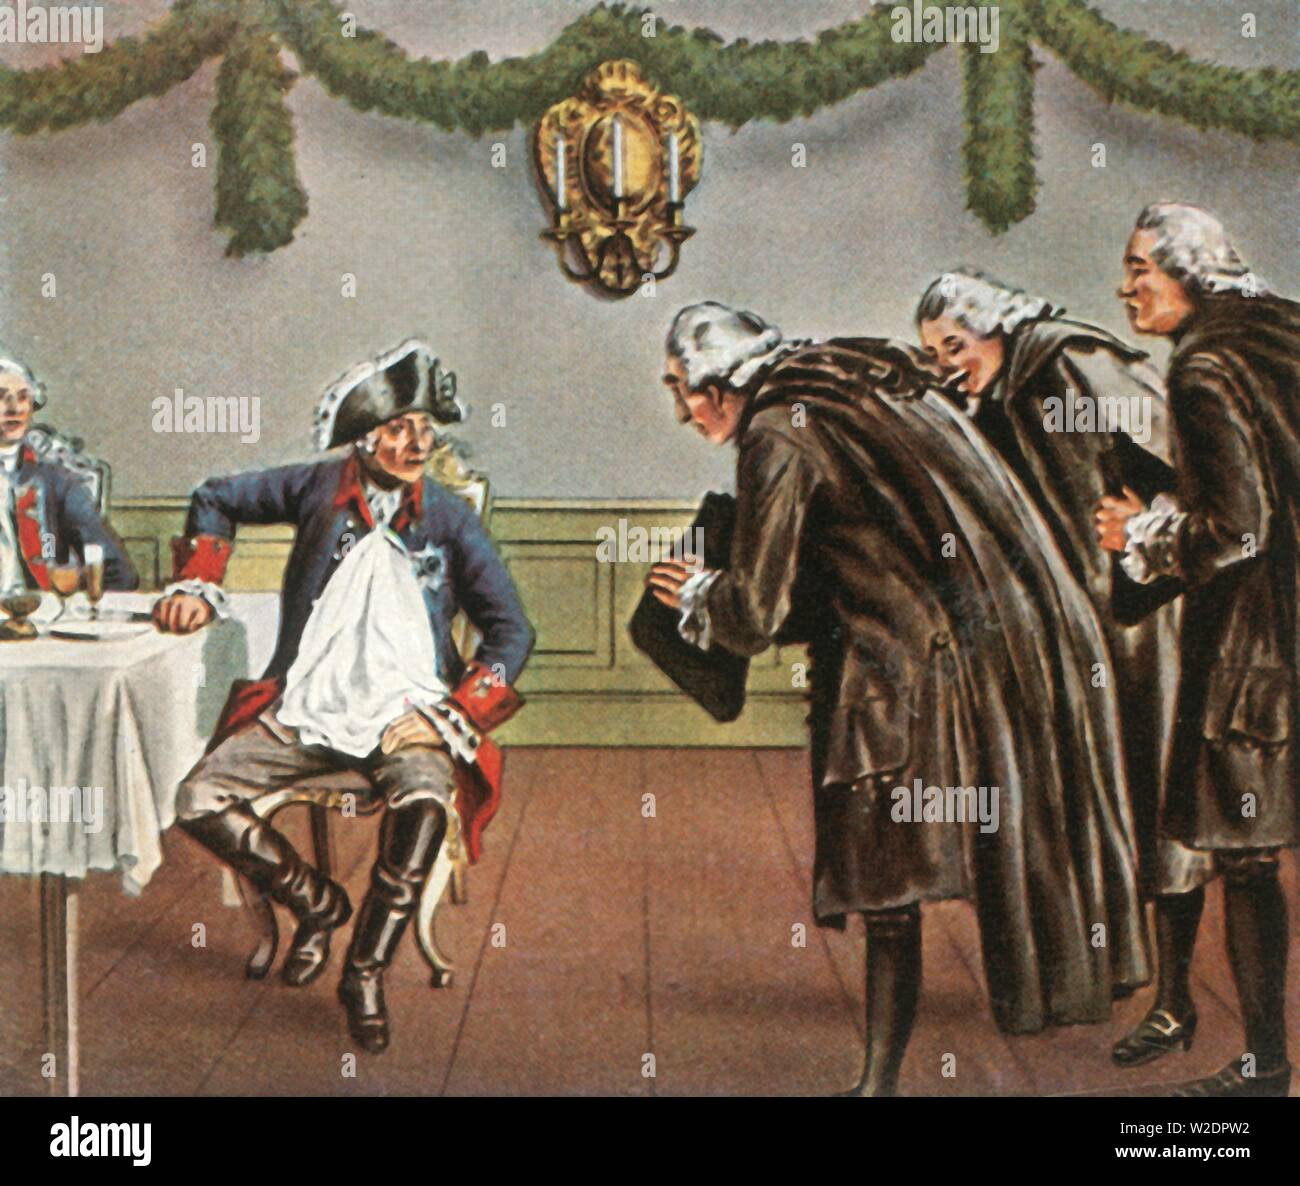 """Frederick the Great and the men from Greiffenberg, 1784, (1936). 'Friedrich Der Grosse Und Die Greiffenberger, 1784'. King Frederick the Great of Prussia (1712-1786) invested money in the reconstruction of the linen town of Greiffenberg (Angermünde, Germany), after it was destroyed by fire. A group of its grateful inhabitants visited him the following year to express their gratitude. From """"Bilder Deutscher Geschichte"""", (Pictures of German History), No.12, cigarette card album. [Cigaretten-Bilderdienst, Altona-Bahrenfeld, Hamburg, Germany, 1936] - Stock Image"""